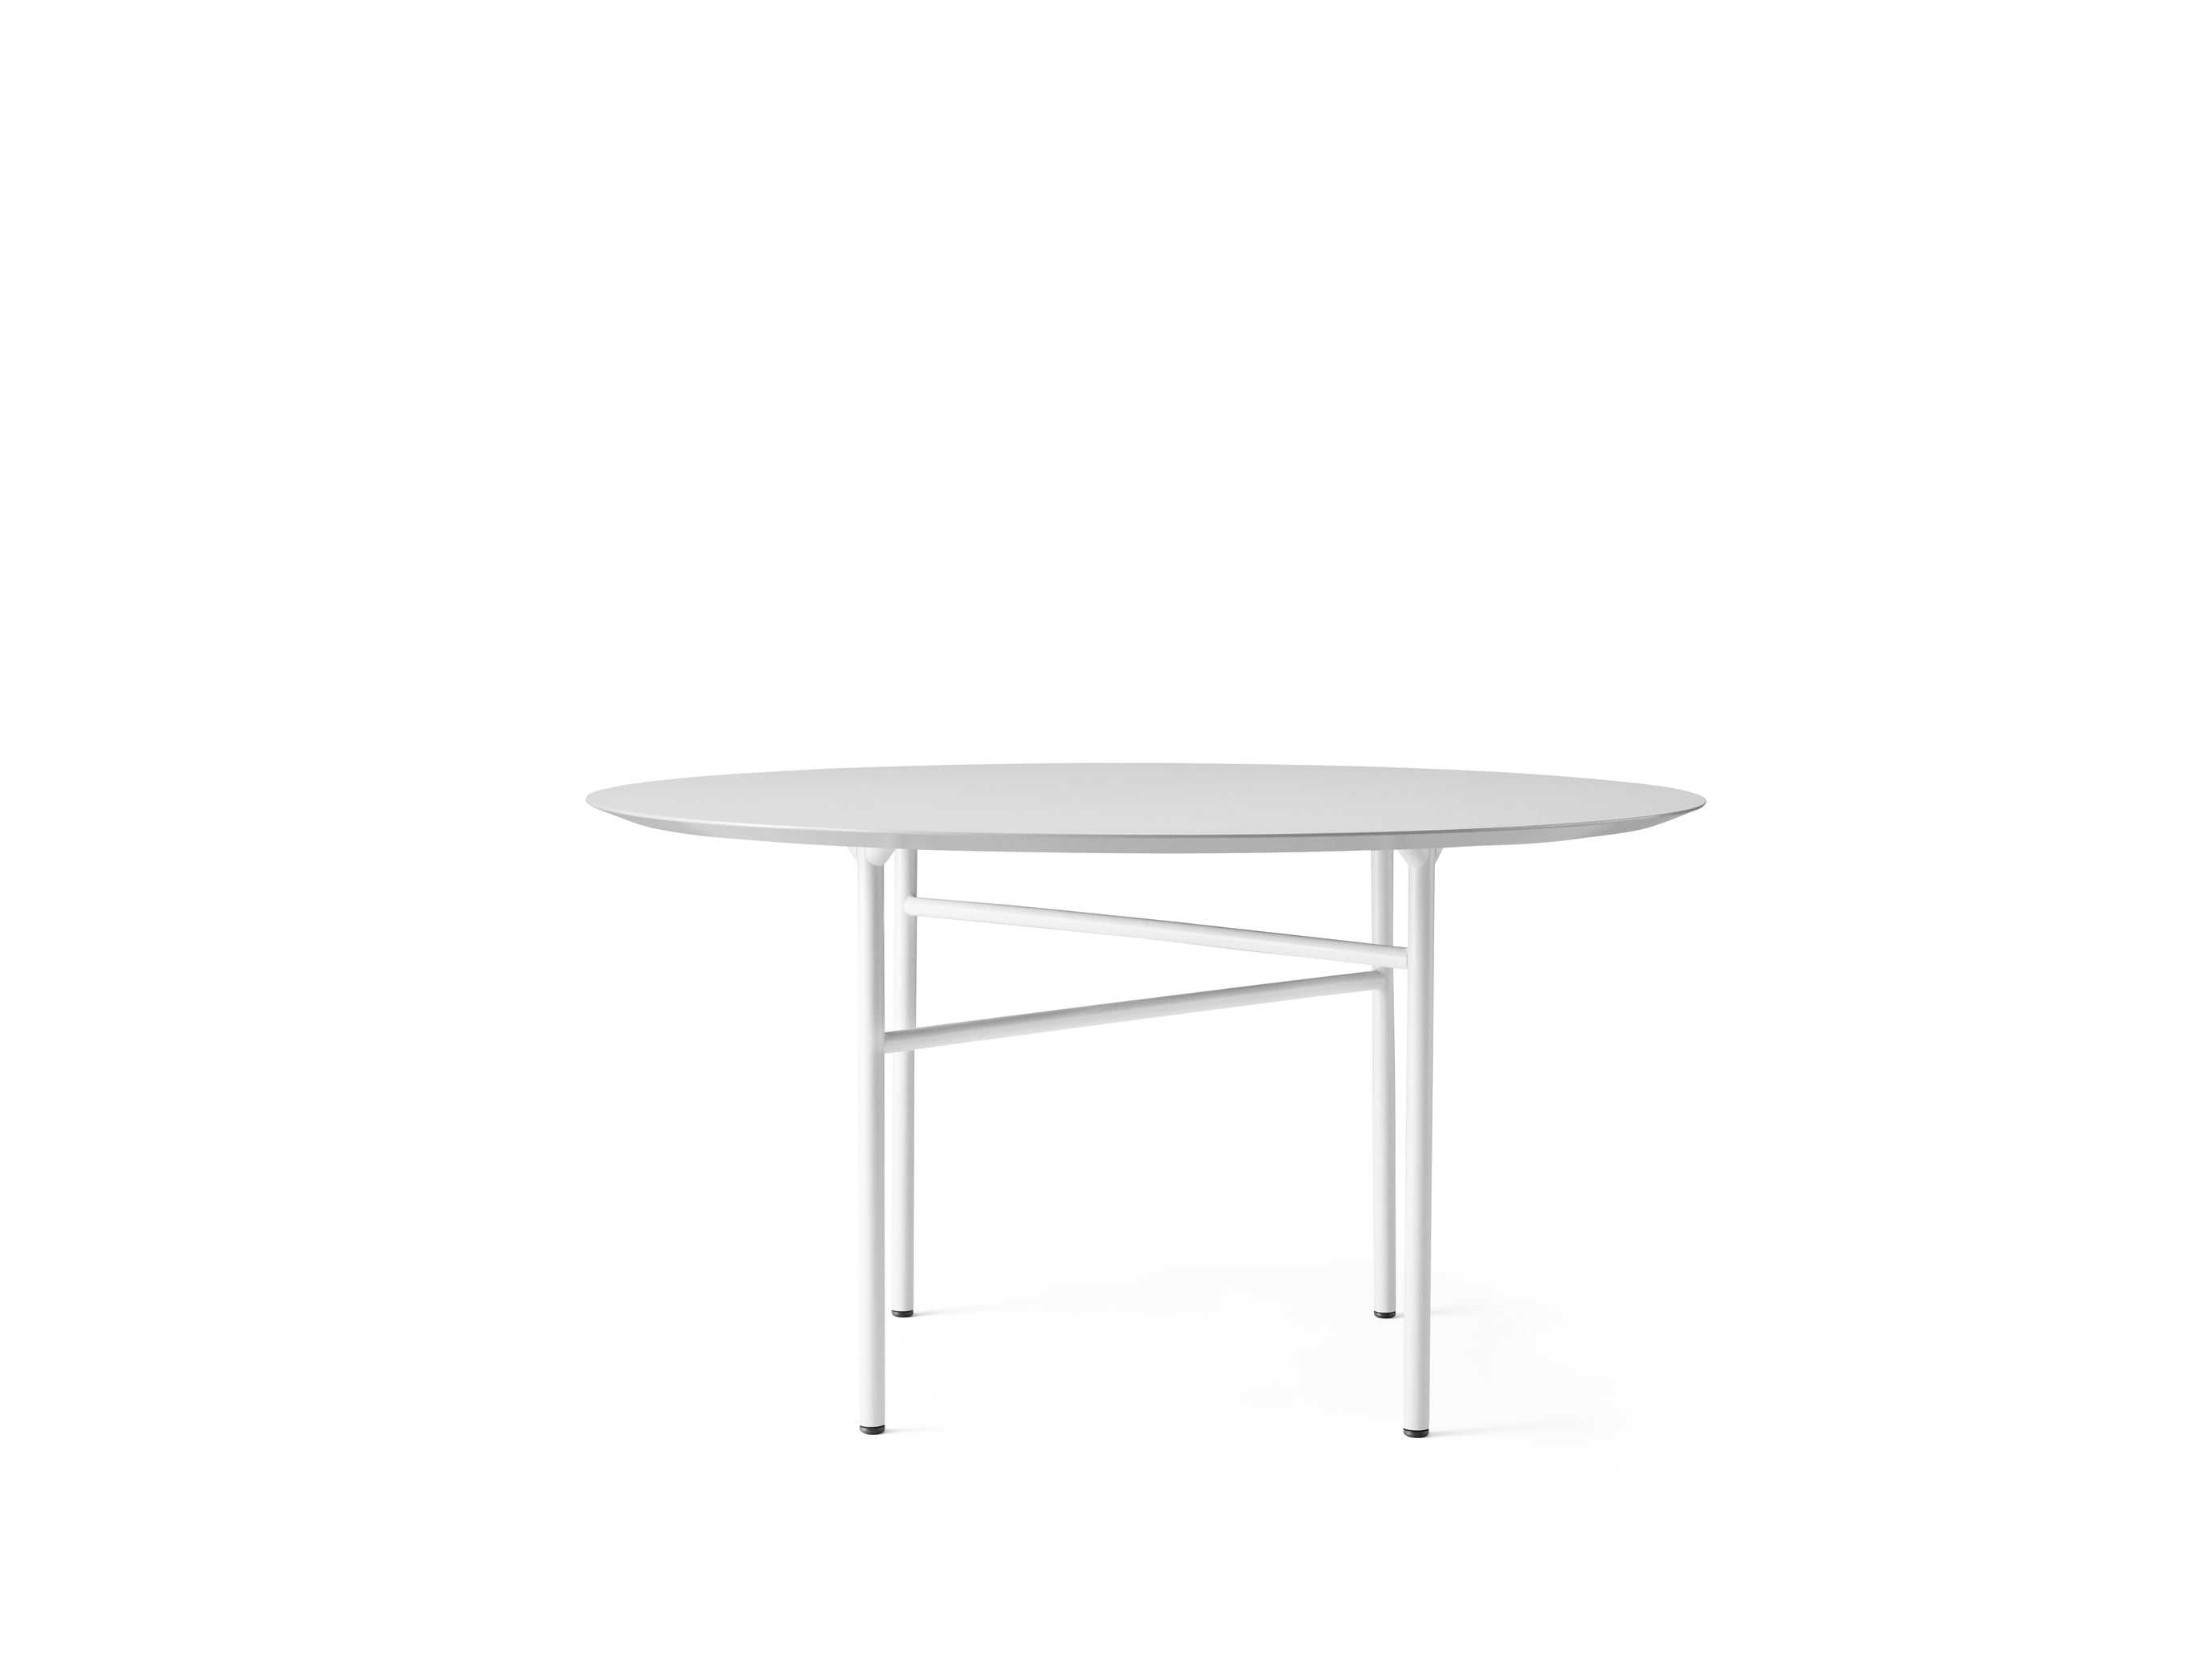 Snaregade Table Round Ø120 cm, Light Grey fra Menu